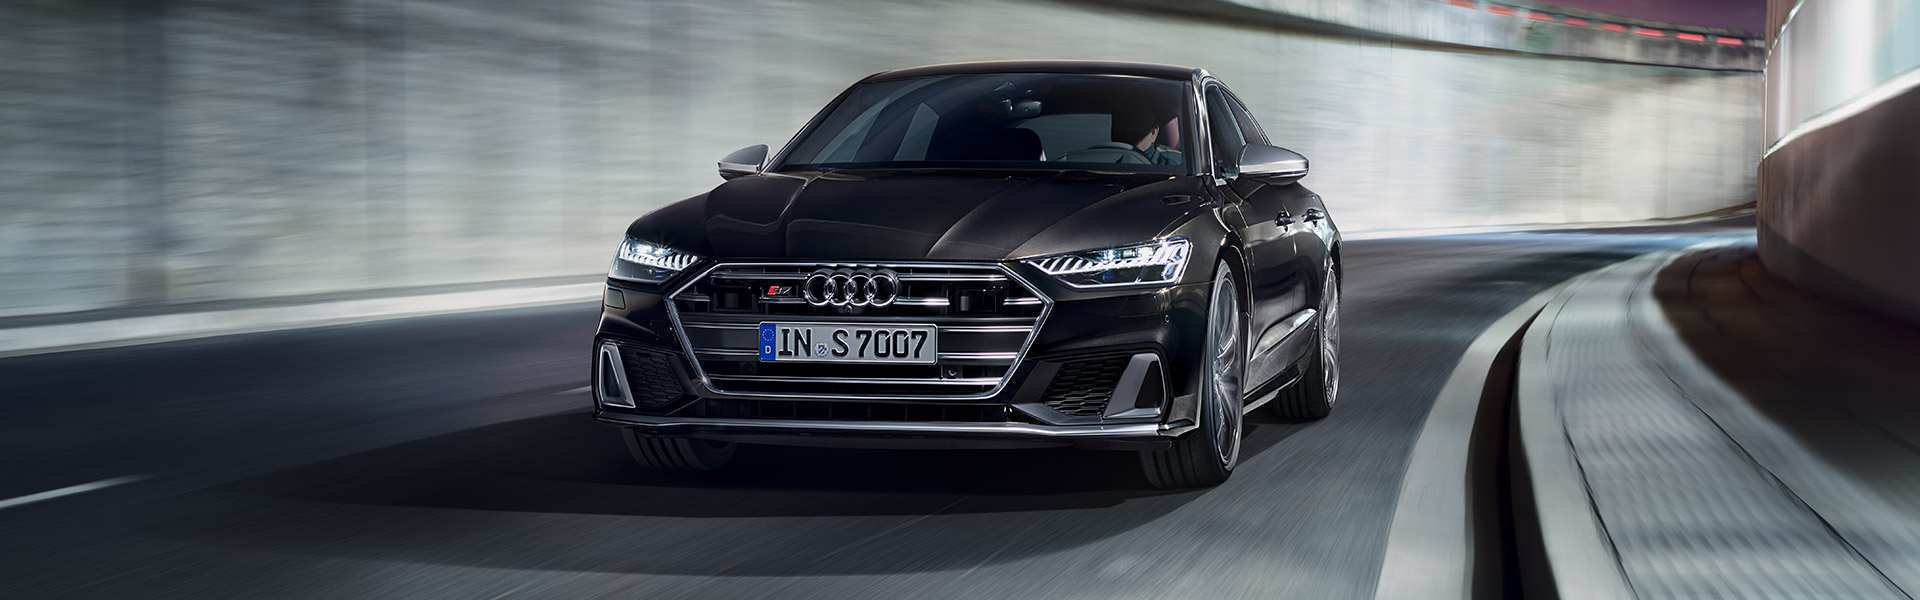 29 The Best 2020 Audi S7 Price And Review